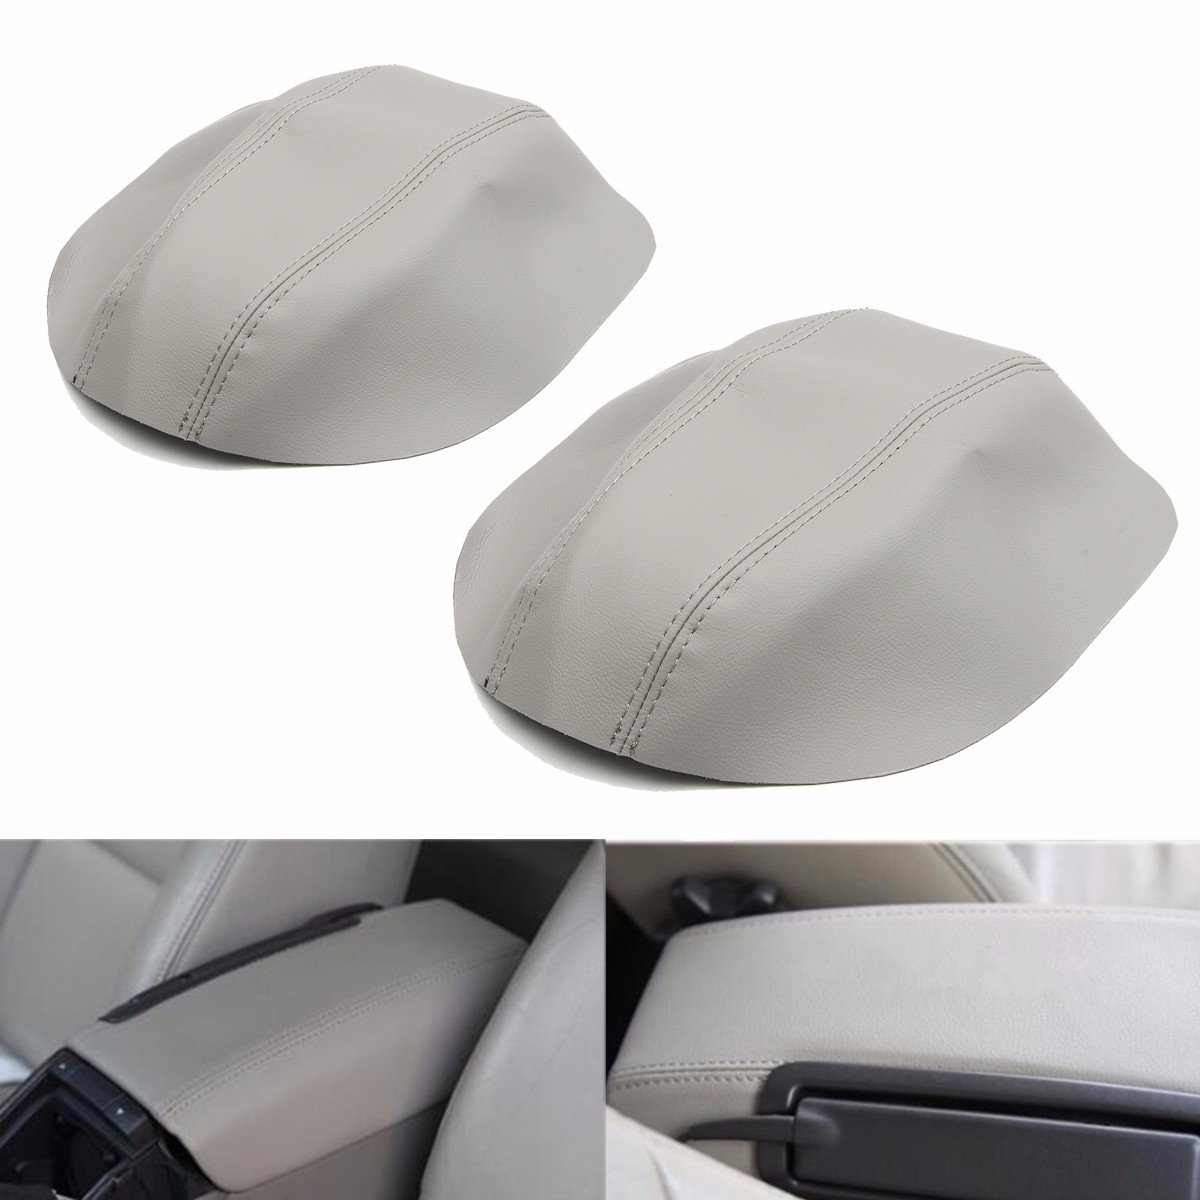 Gray Leather Car Center Console Armrest Cover Lid Pad for Volvo S80 1999-2006 Auto Car Replacement Interior Armrests Parts